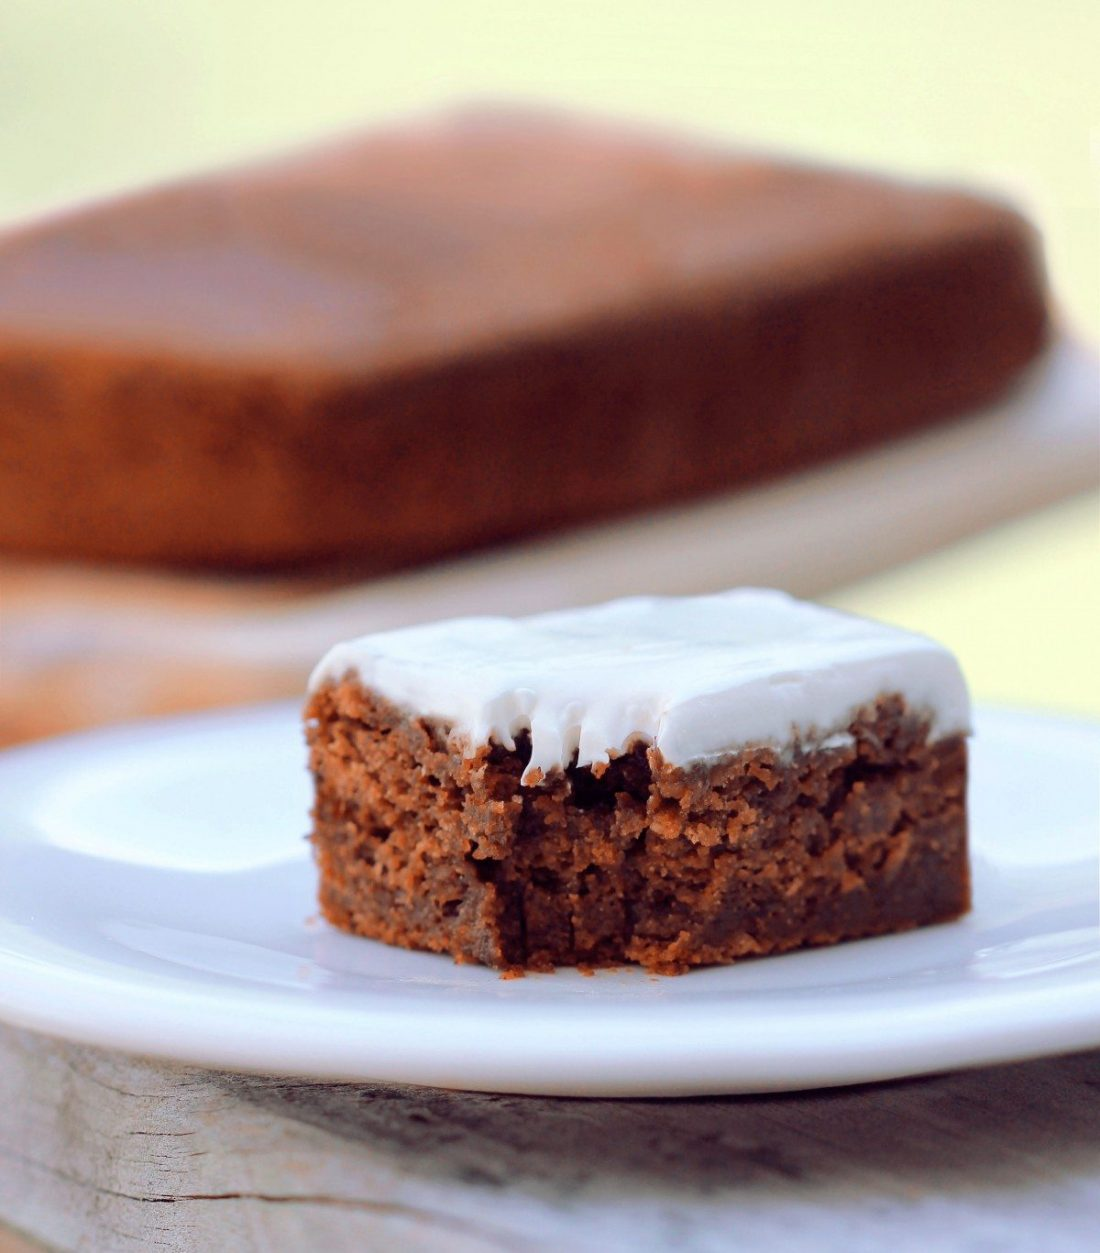 Healthy Gingerbread Recipe - With 3 Secret Ingredients!